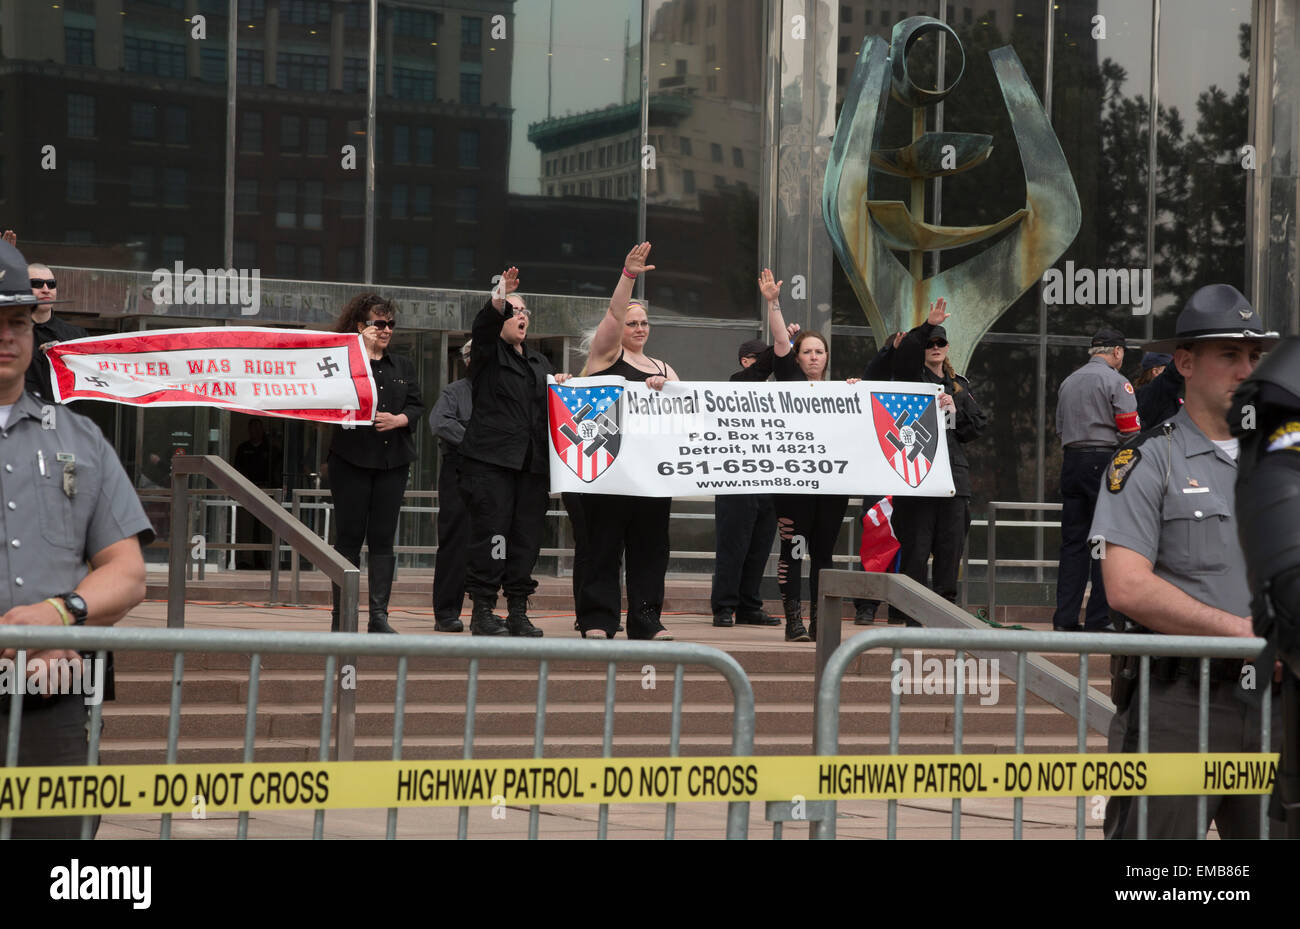 Toledo, Ohio USA - 18 April 2015 - Protected by hundreds of police, the neo-Nazi National Socialist Movement held Stock Photo